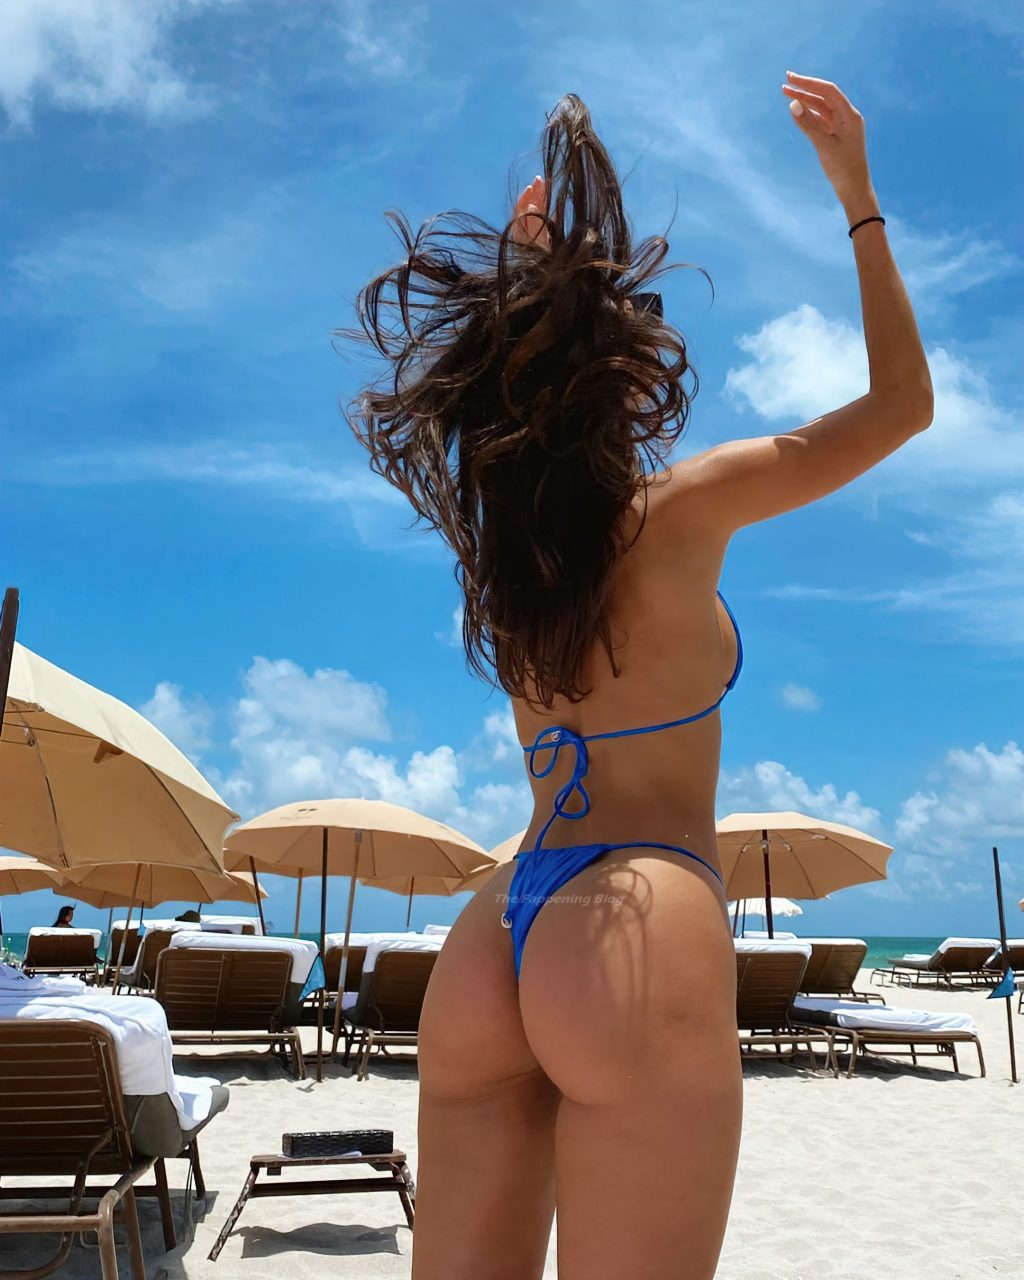 Sohni Ahmed Shows Off Her Slender Body in a Blue Bikini at the Beach in Miami (22 Photos)